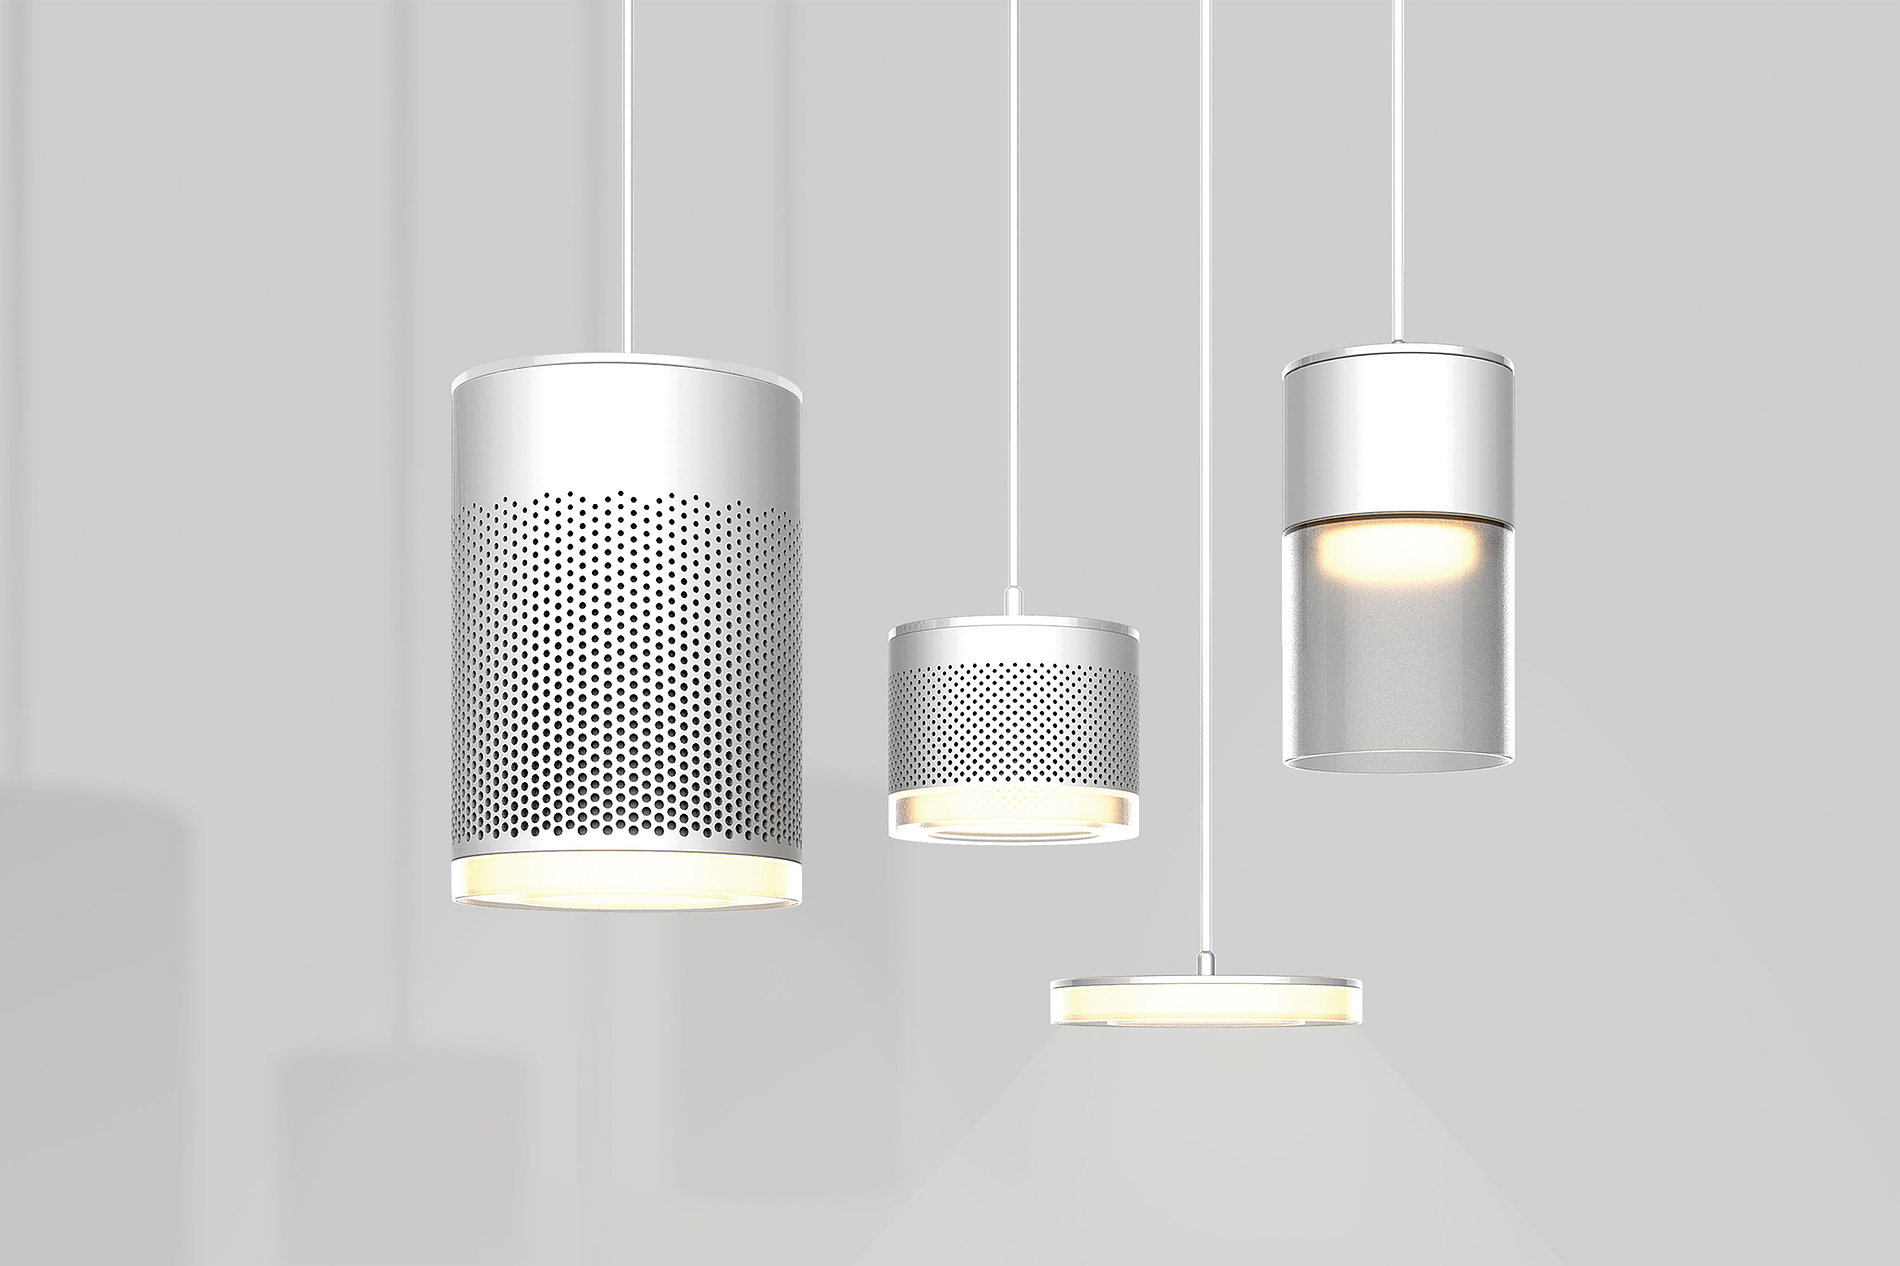 Suspended Type Air Purification Light | Red Dot Design Award